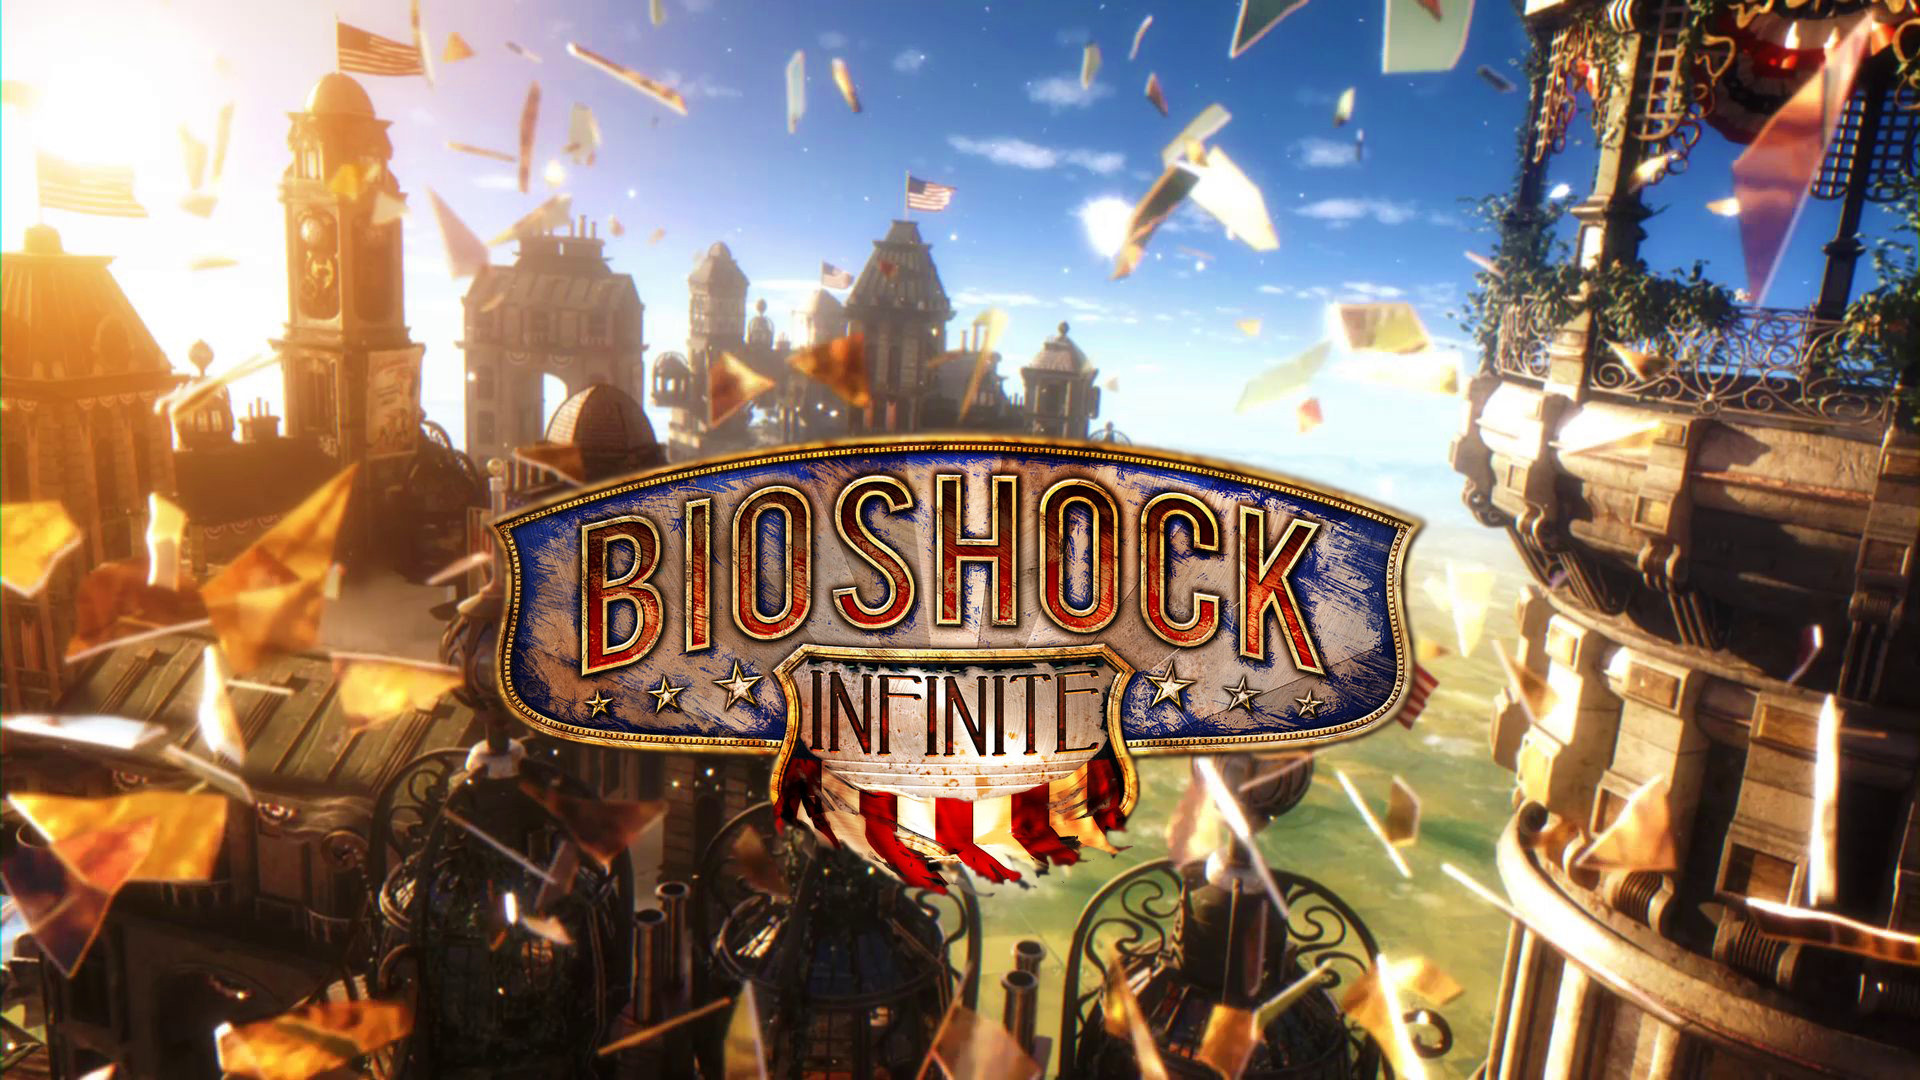 BioShock Infinite, Colombia, Artwork, Video Games, Clouds, City 1600×1200  Bioshock The Collection Wallpapers (41 Wallpapers) | Adorable Wallpapers …